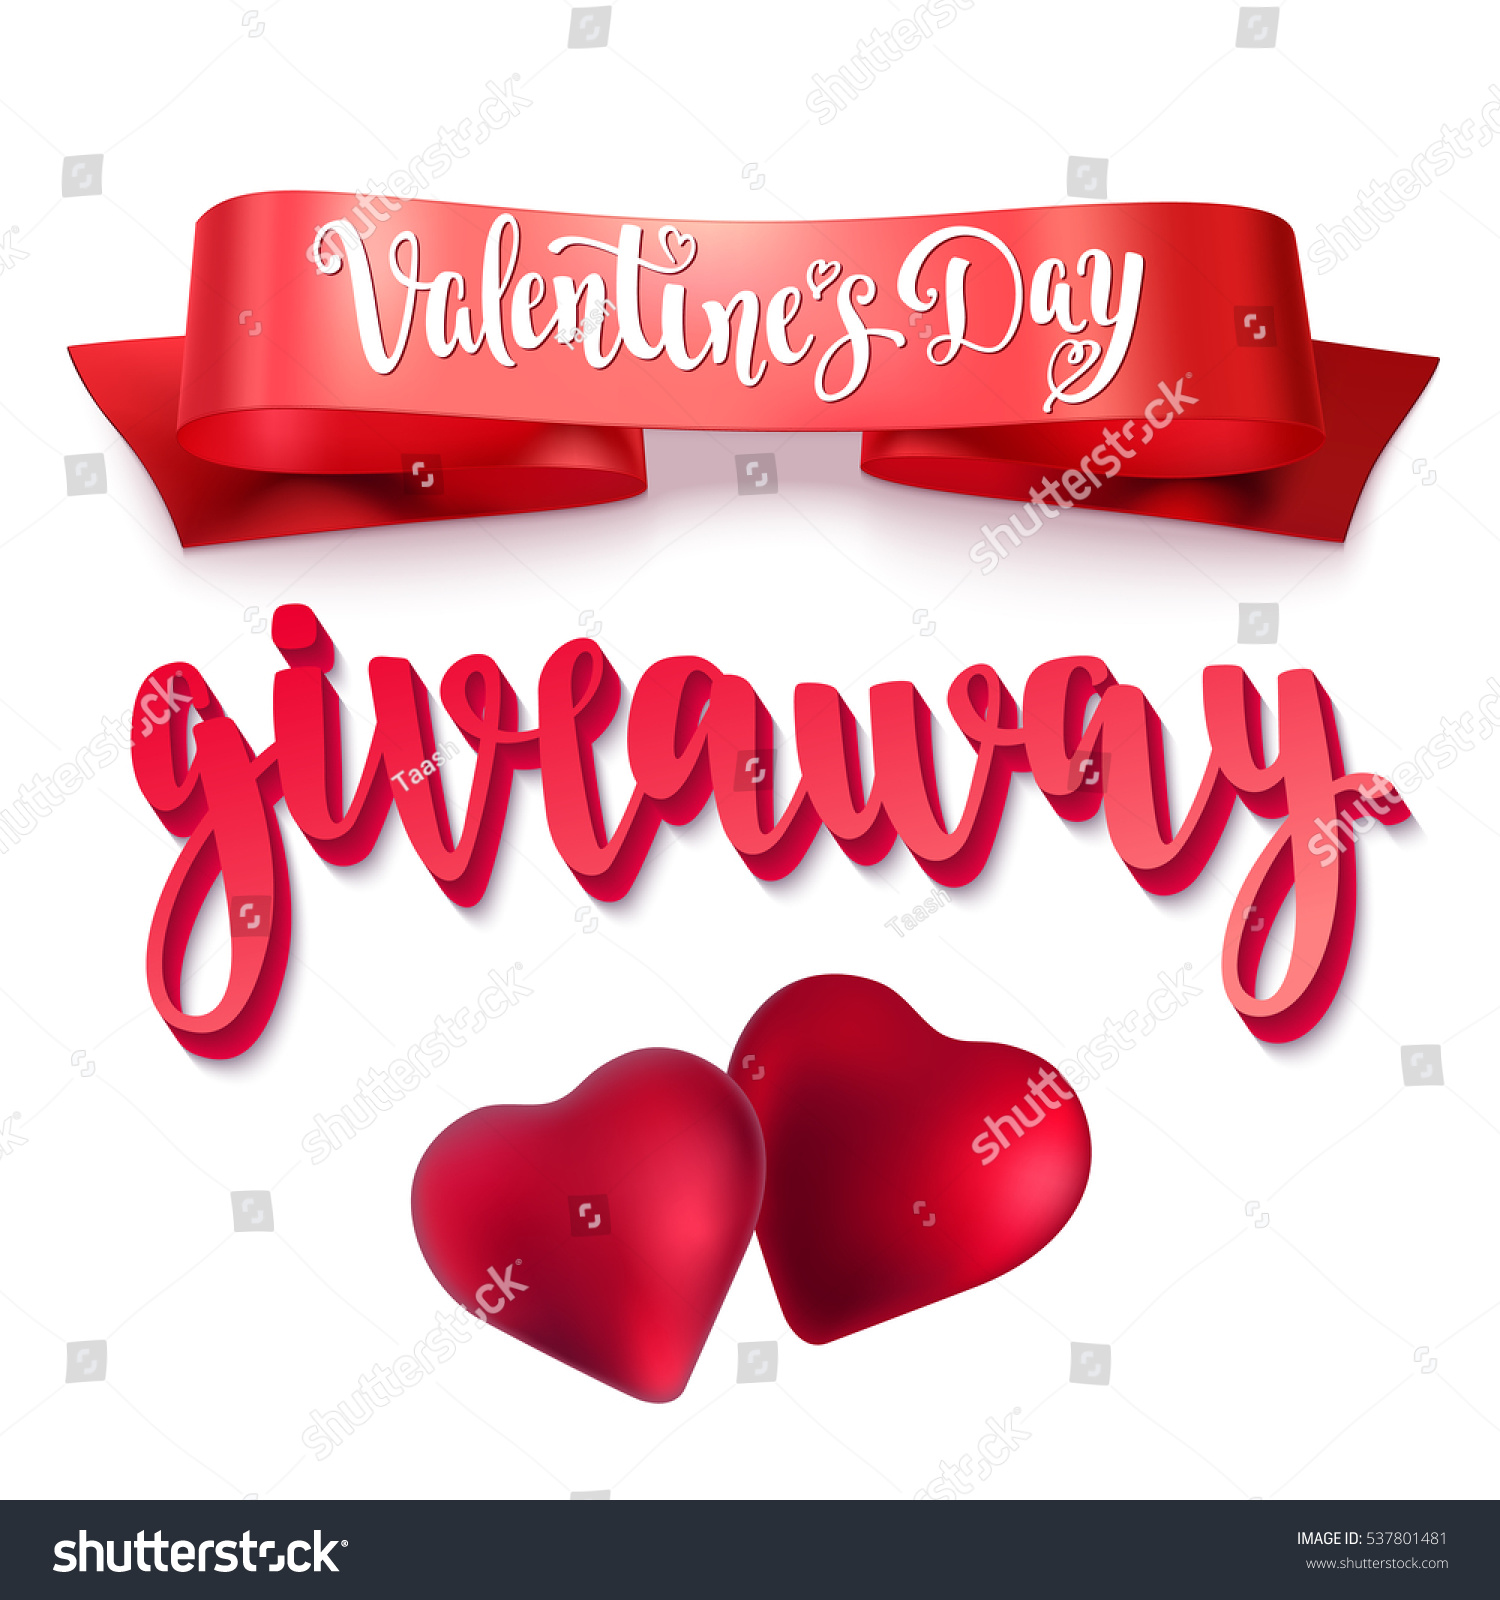 Valentines Day Giveaway Holiday Card With Calligraphy Red Ribbon And  Decorative Elements Handwritten   Valentine Giveaway